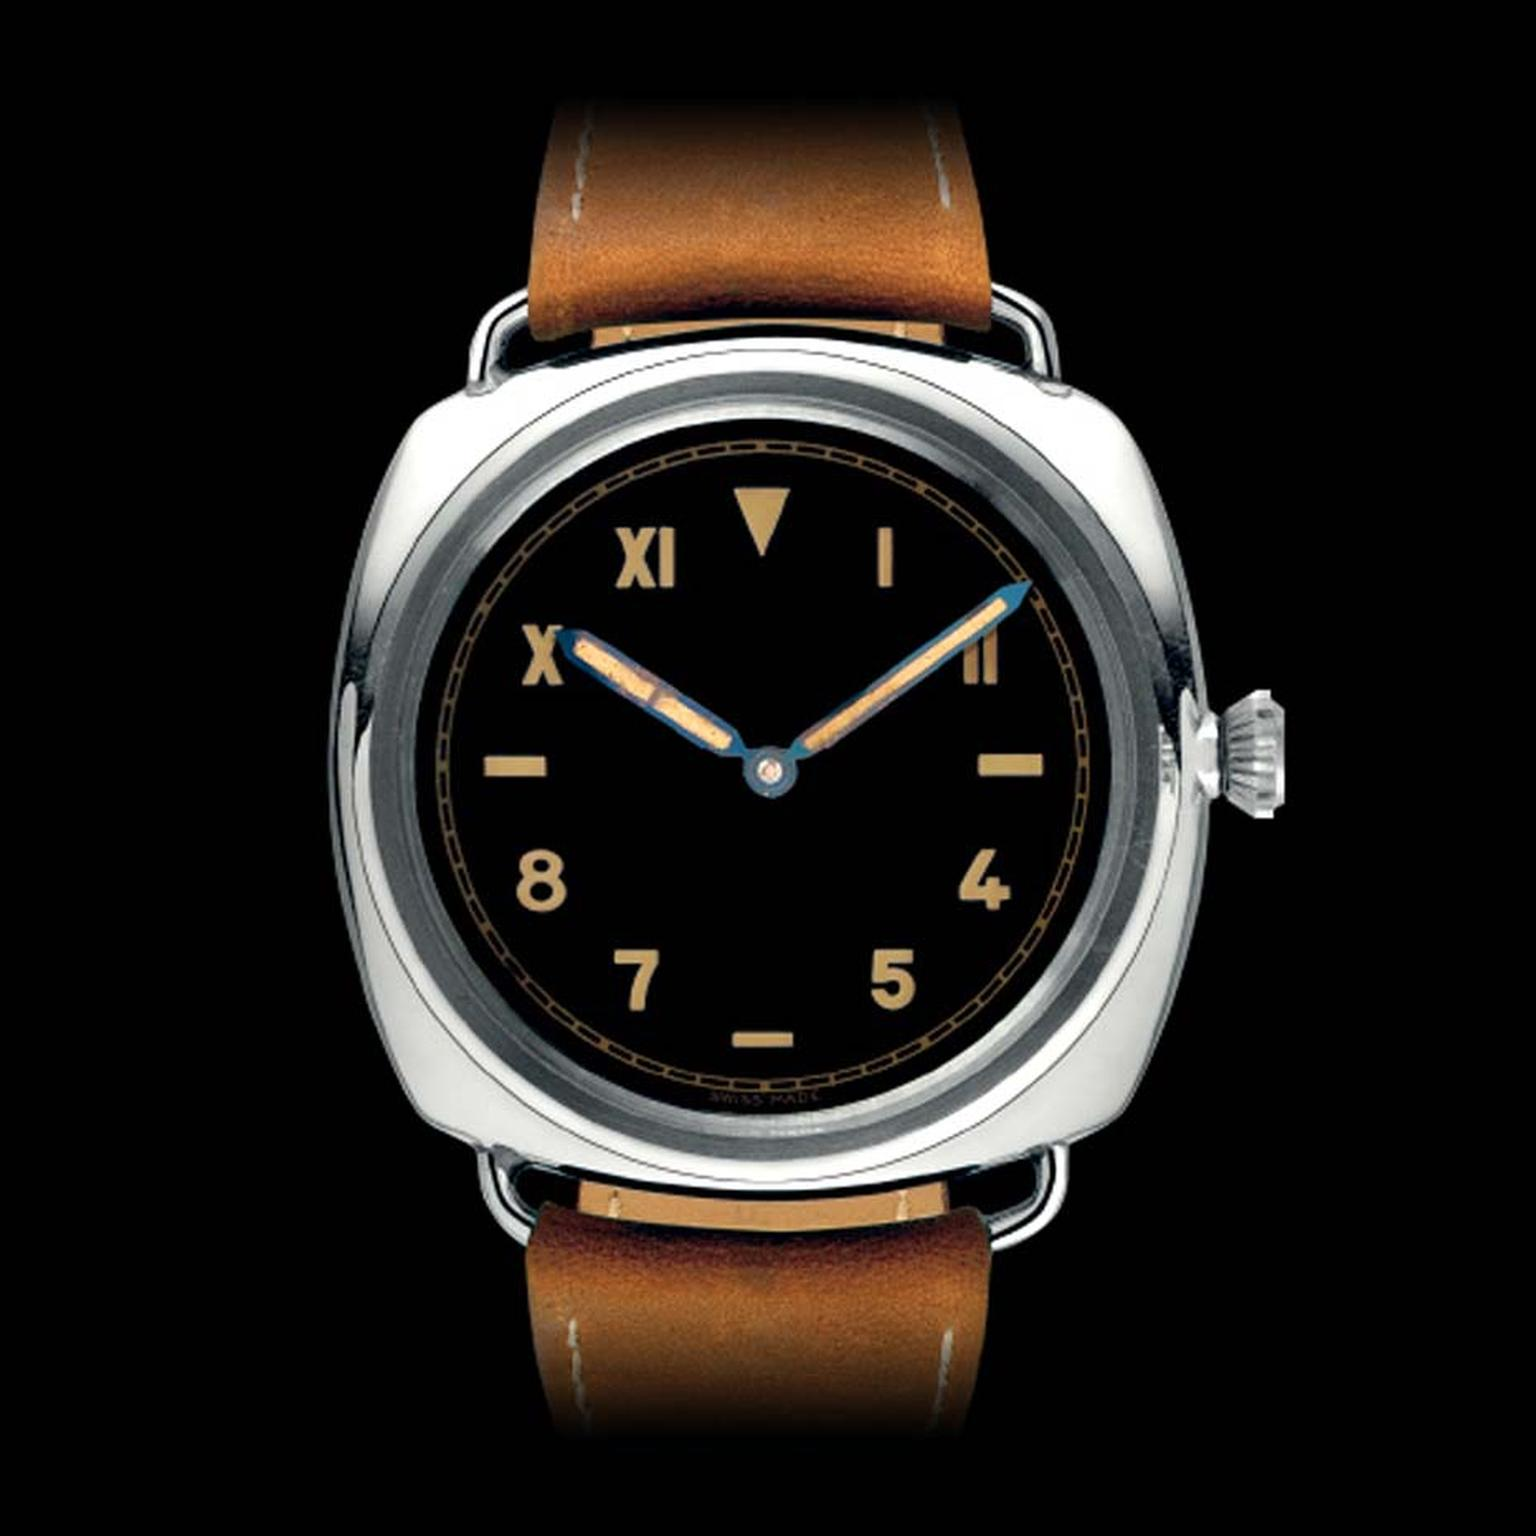 The ten Panerai Radiomir prototypes of 1936 measured a hefty 47mm in diameter and were housed in a cushion-shaped steel case with a screwed-down crown and caseback and soldered lugs. The case and movement were made by Rolex.